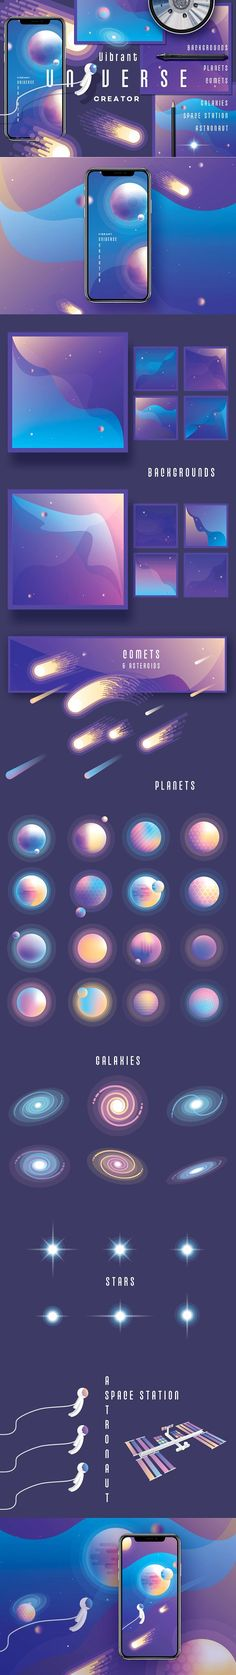 Vibrant Universe Creator by Polar Vectors on @creativemarket